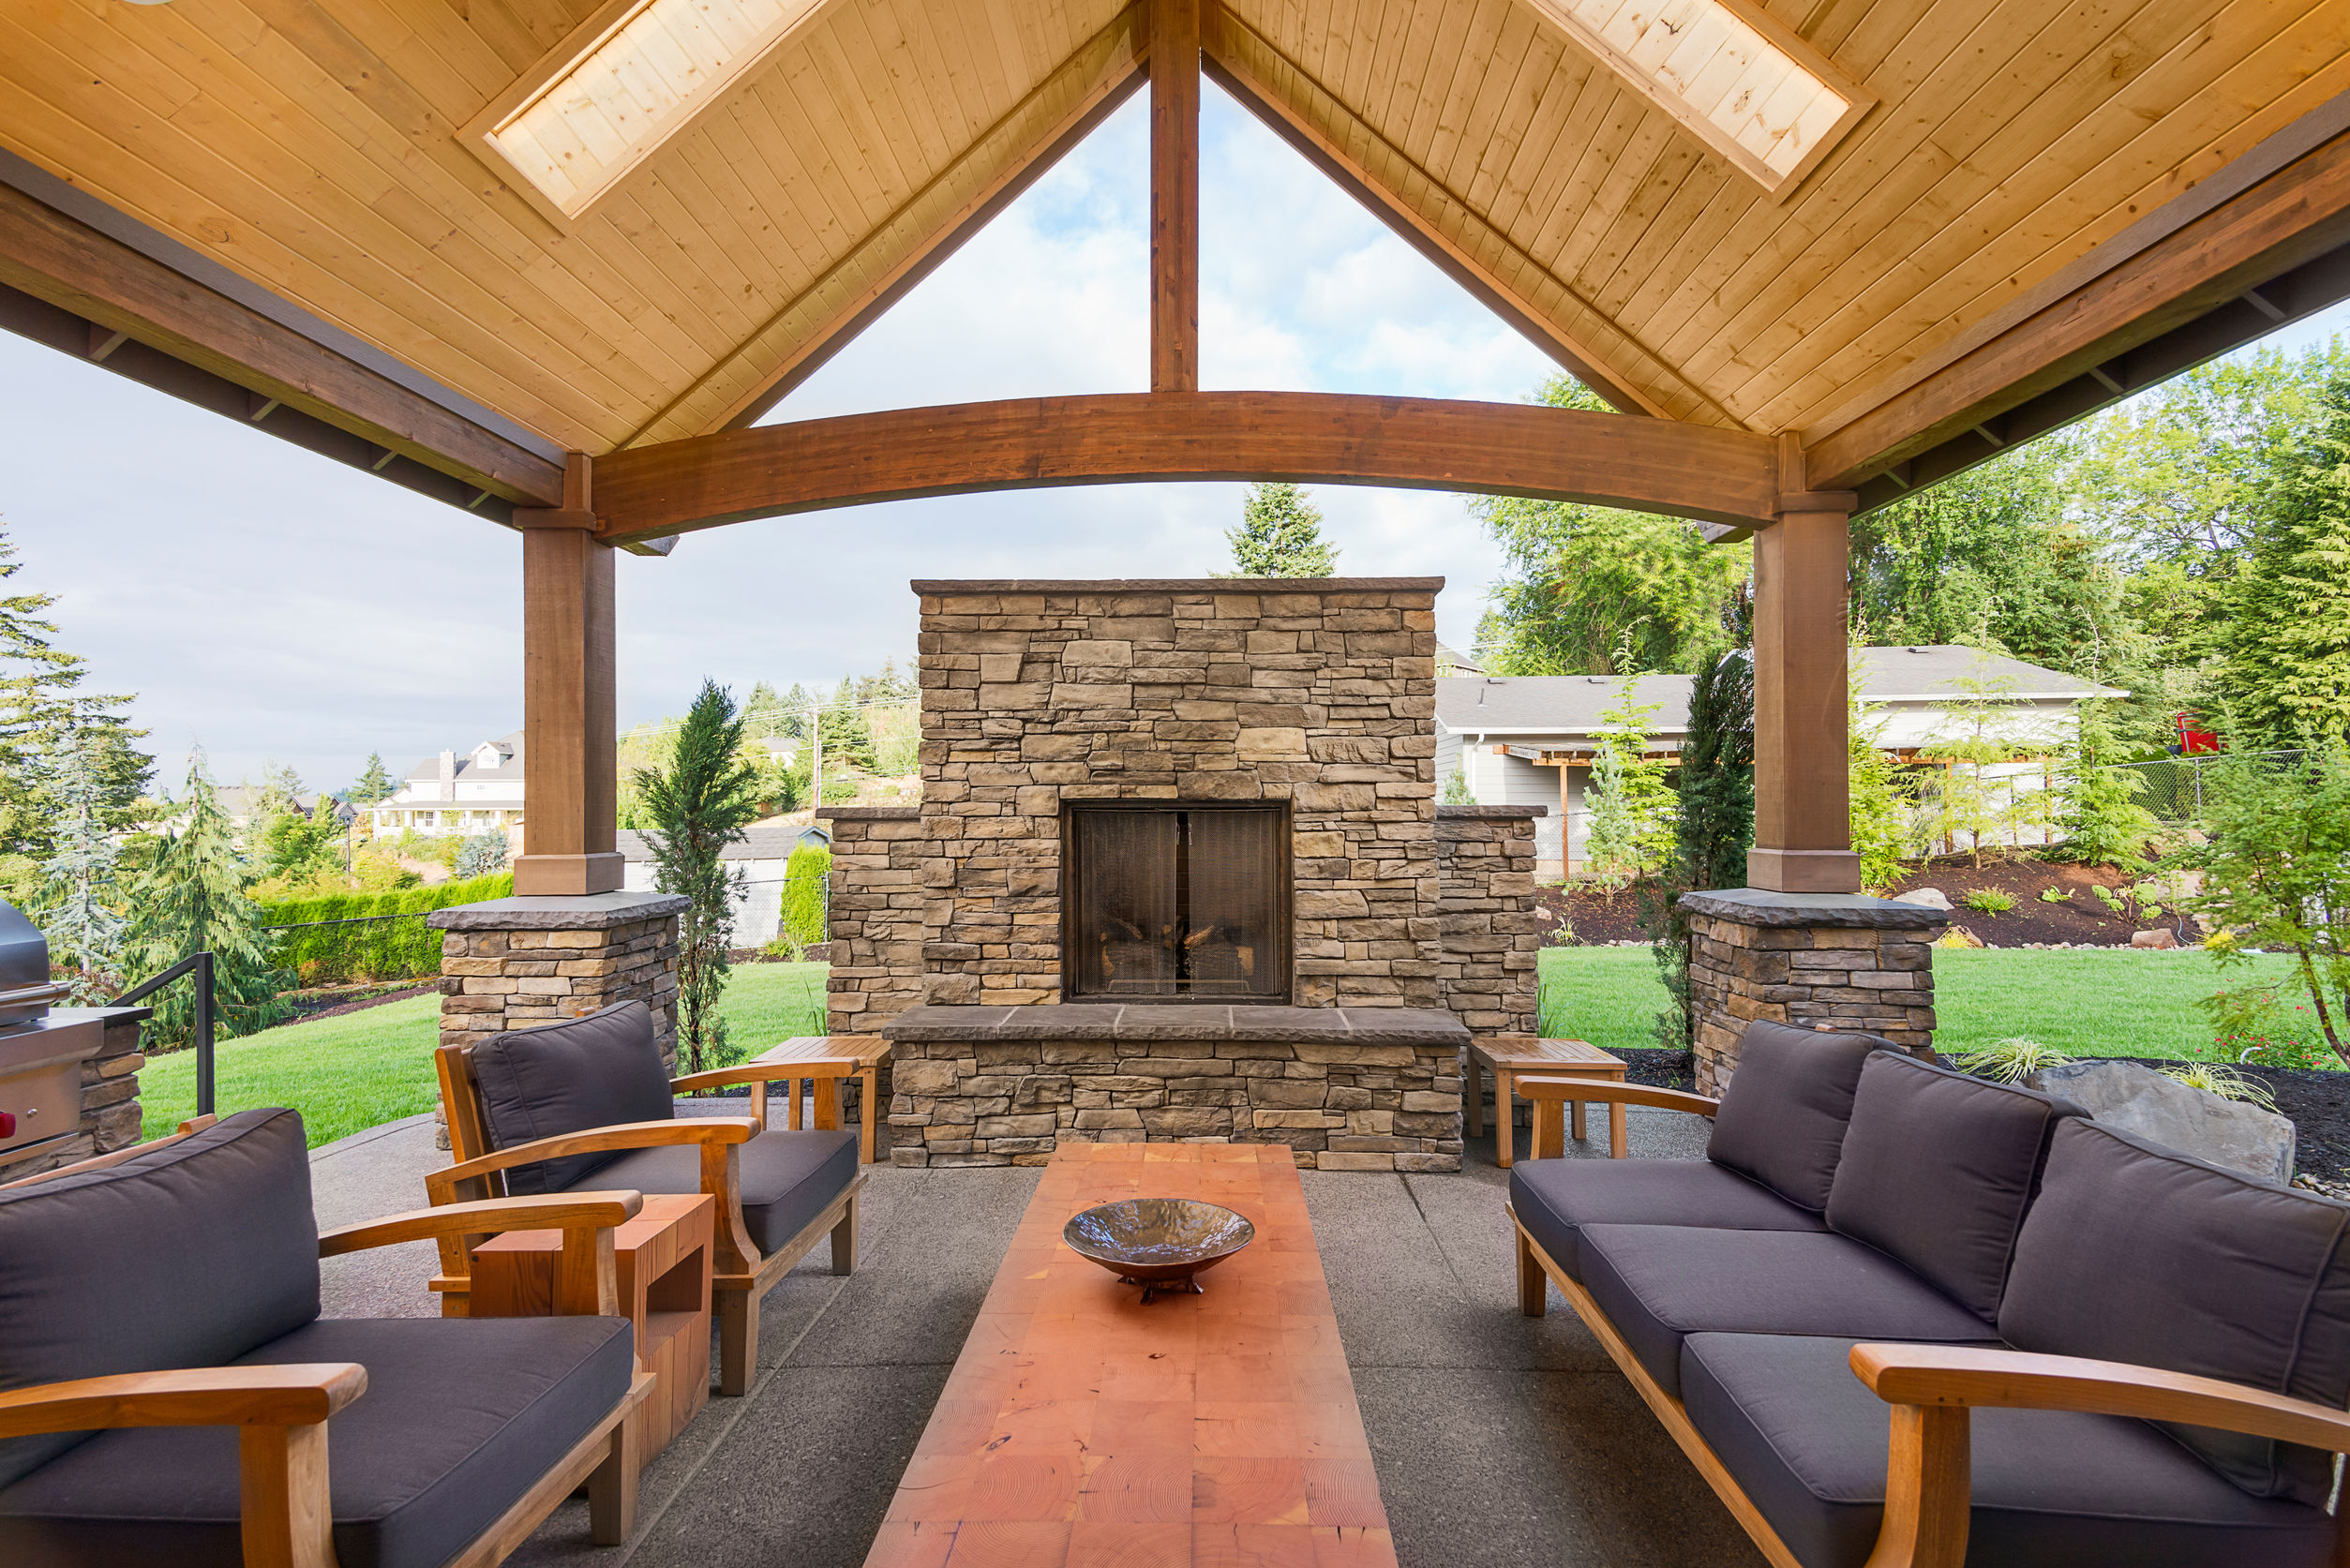 46487571 - covered patio outside luxury home with large stone fireplace, table, and couches